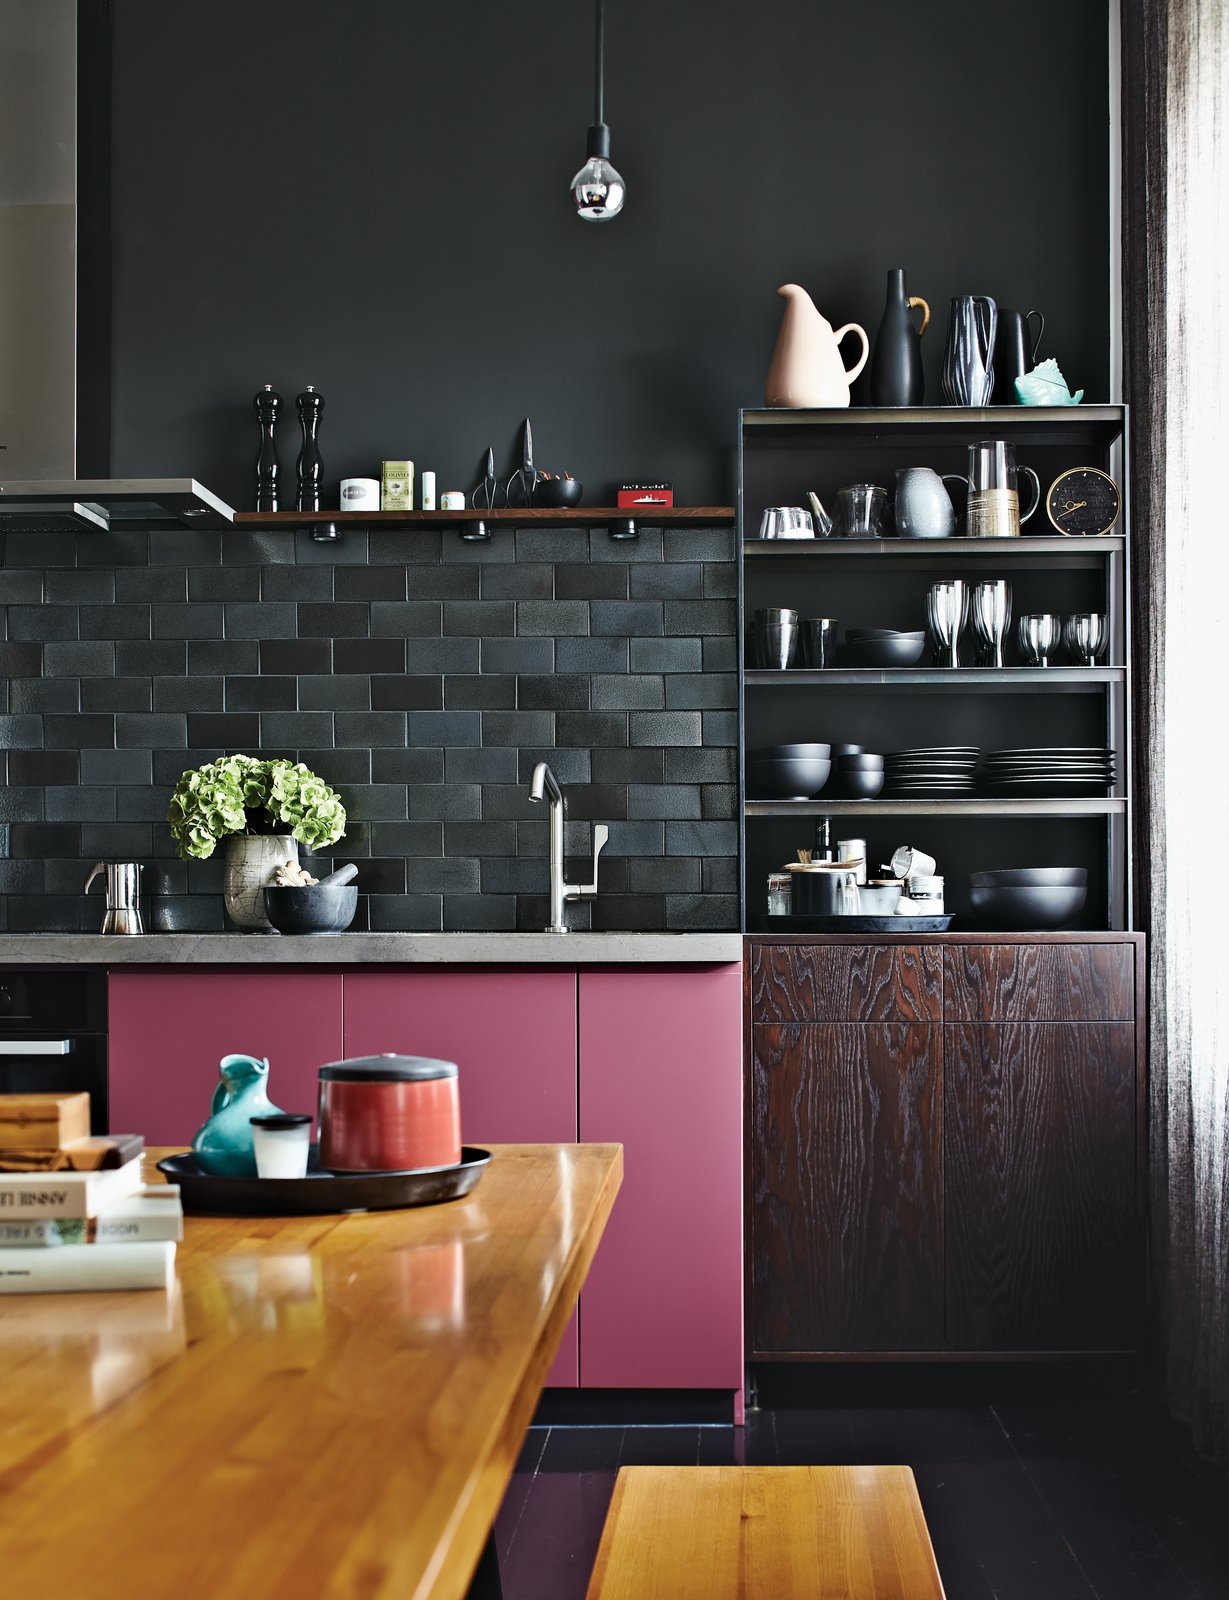 Articles about 7 dream kitchens inspire your renovation on Dwell.com